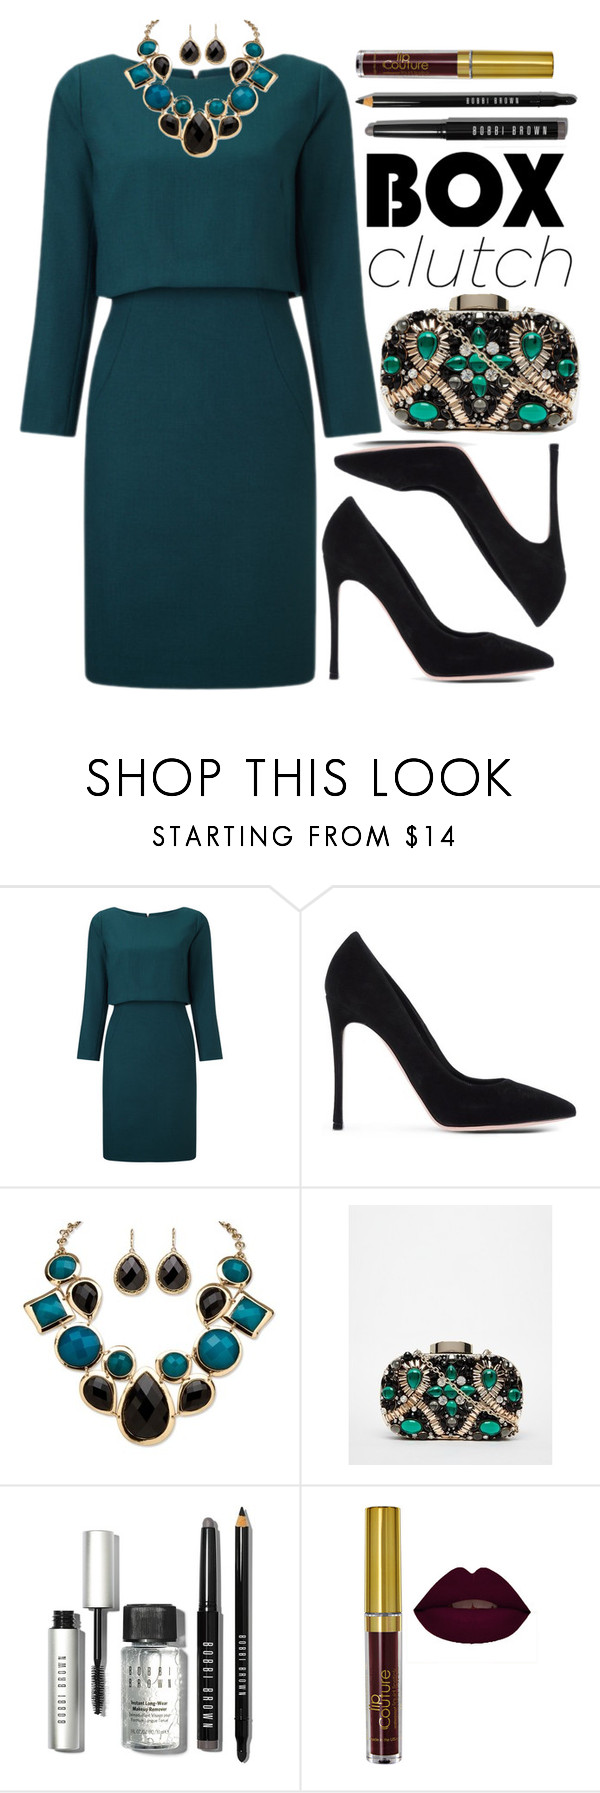 """""""Untitled #29"""" by lola-peters ❤ liked on Polyvore featuring Gianvito Rossi, Palm Beach Jewelry, ALDO, Bobbi Brown Cosmetics, women's clothing, women's fashion, women, female, woman and misses"""